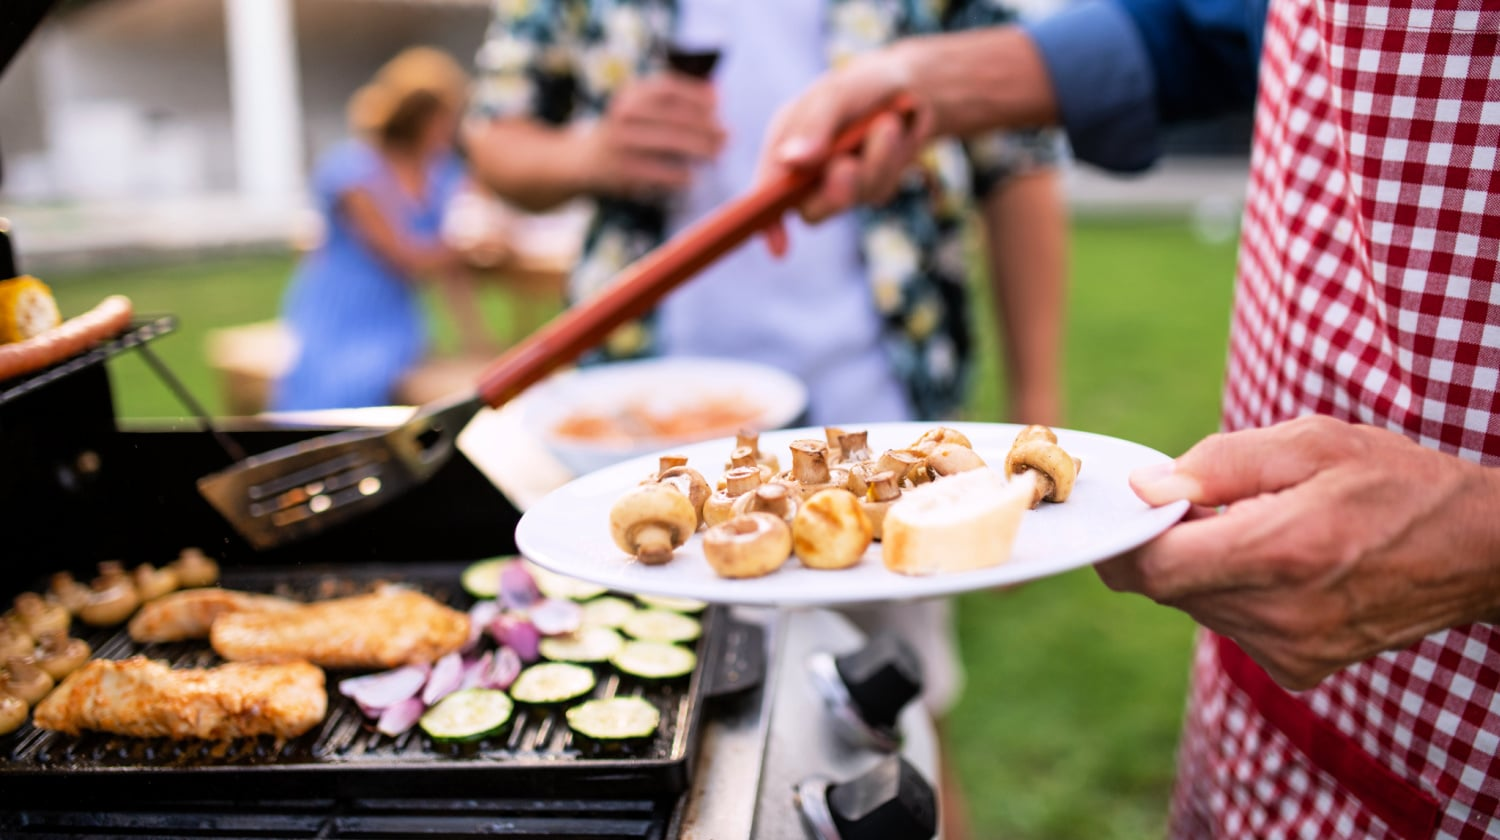 Side view of male standing at outdoor grill cooking meats and vegetables